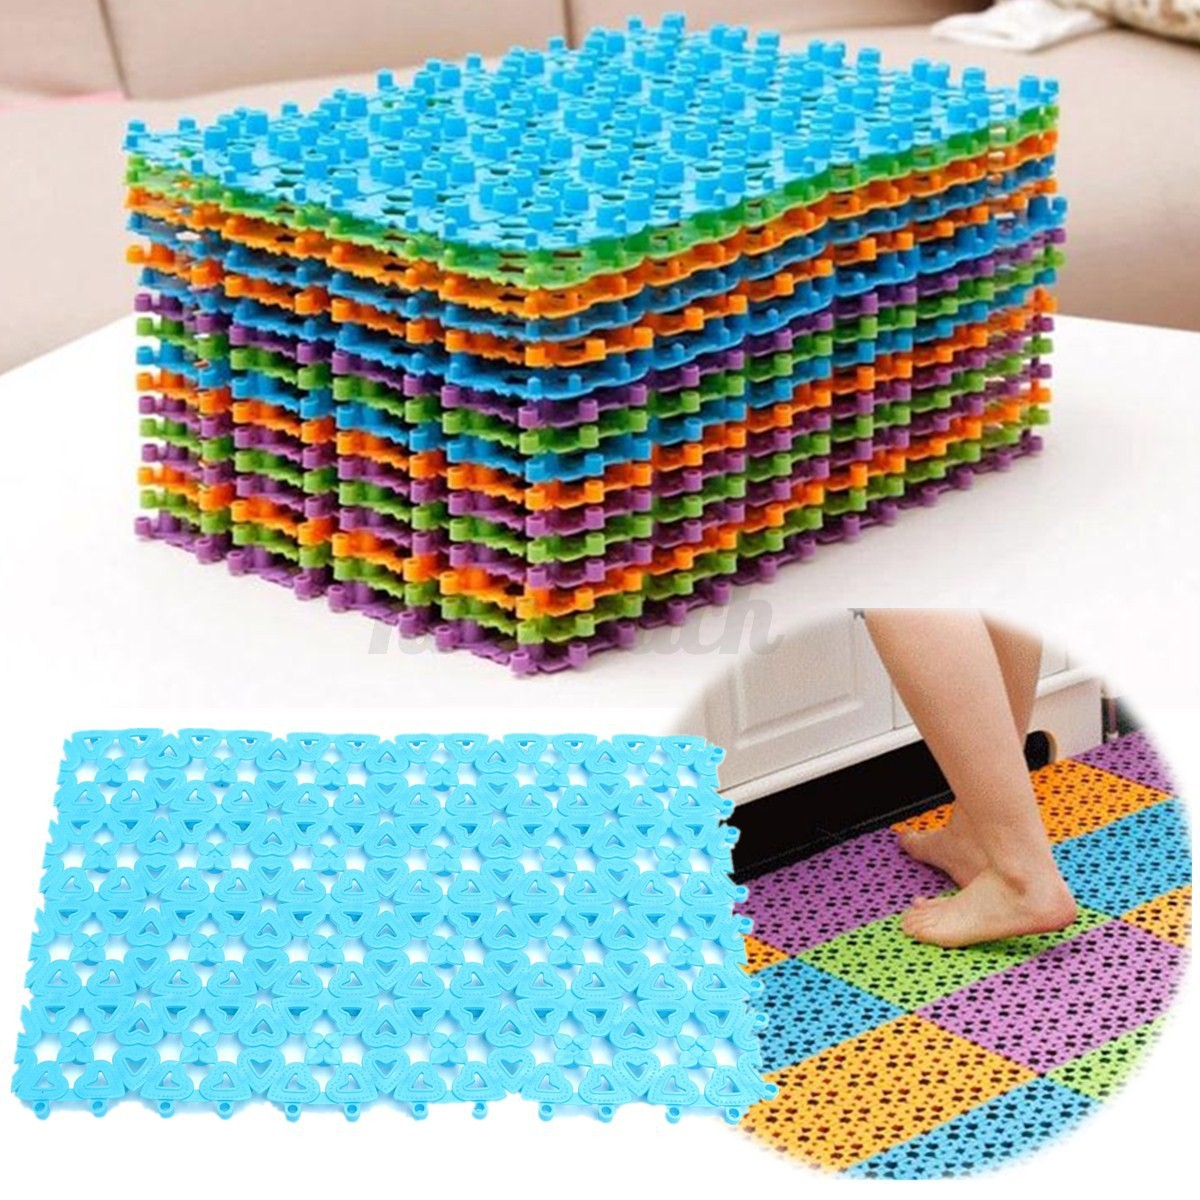 Non Slip Bathroom Mats Bath Mat Bathtub Tub Shower Large Non Anti Slip Skid